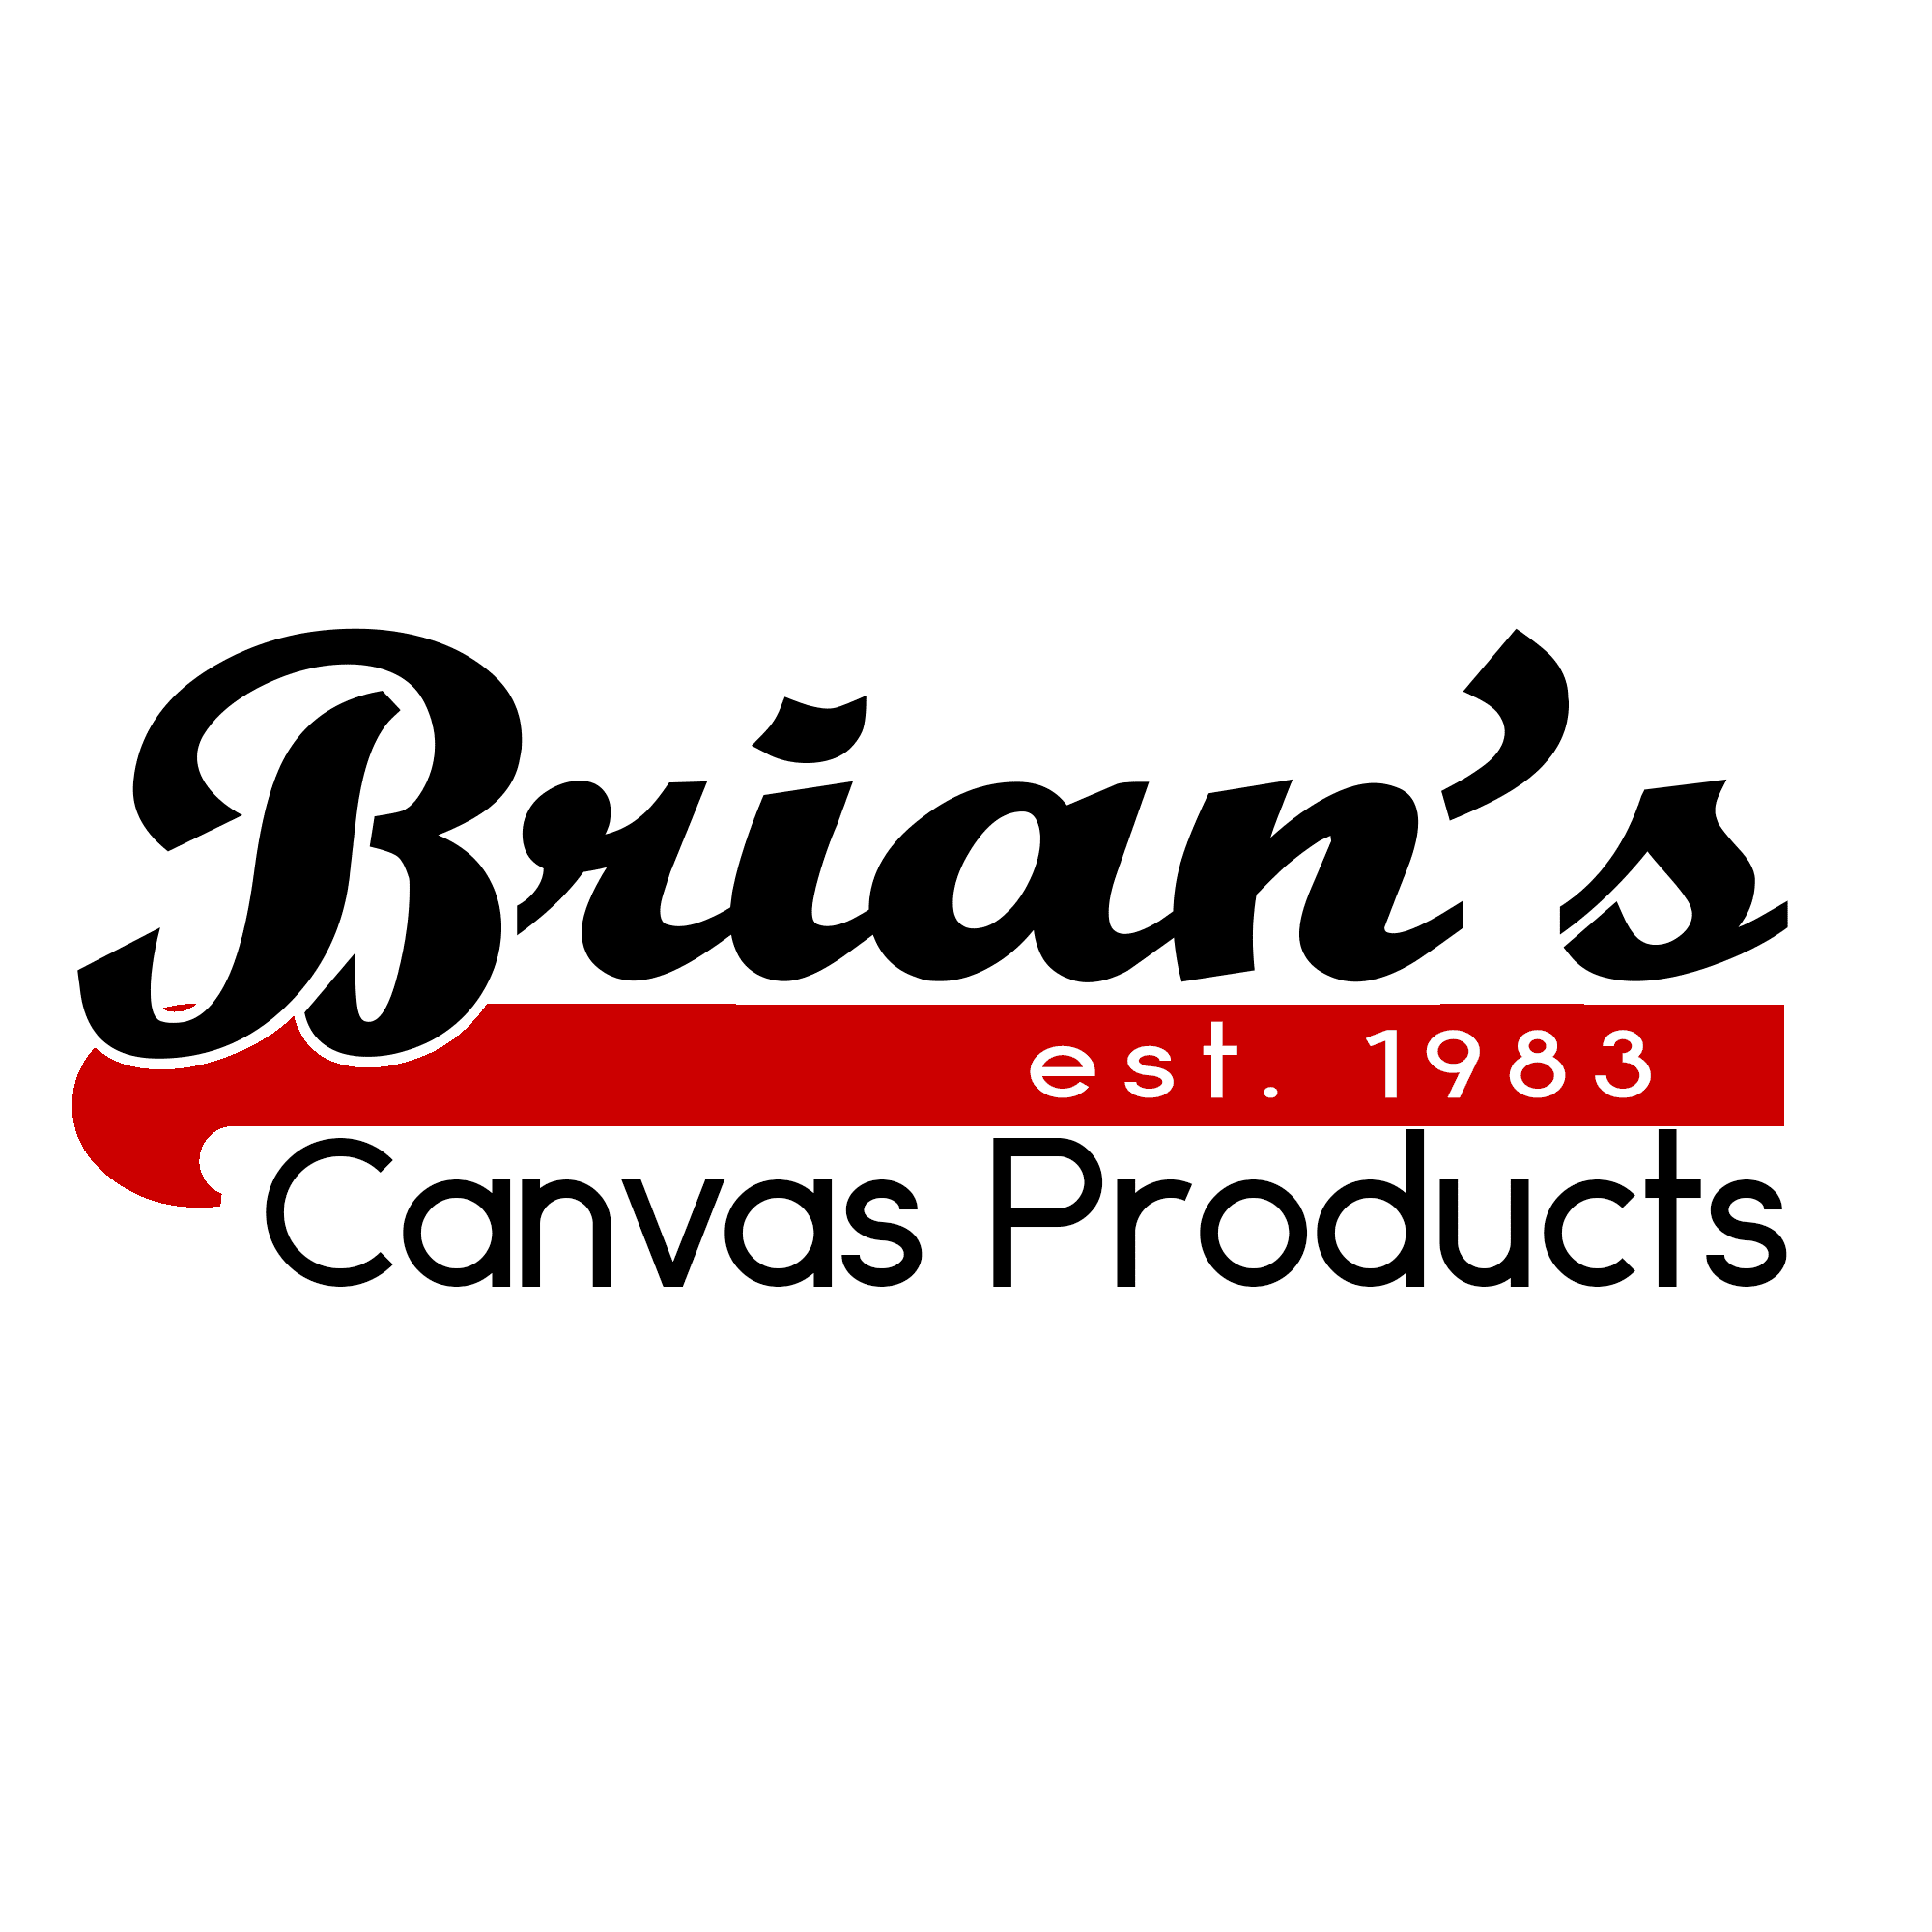 Brian's Canvas Boat Cover Repair & Manufacturing - Clearfield, UT - Model & Crafts